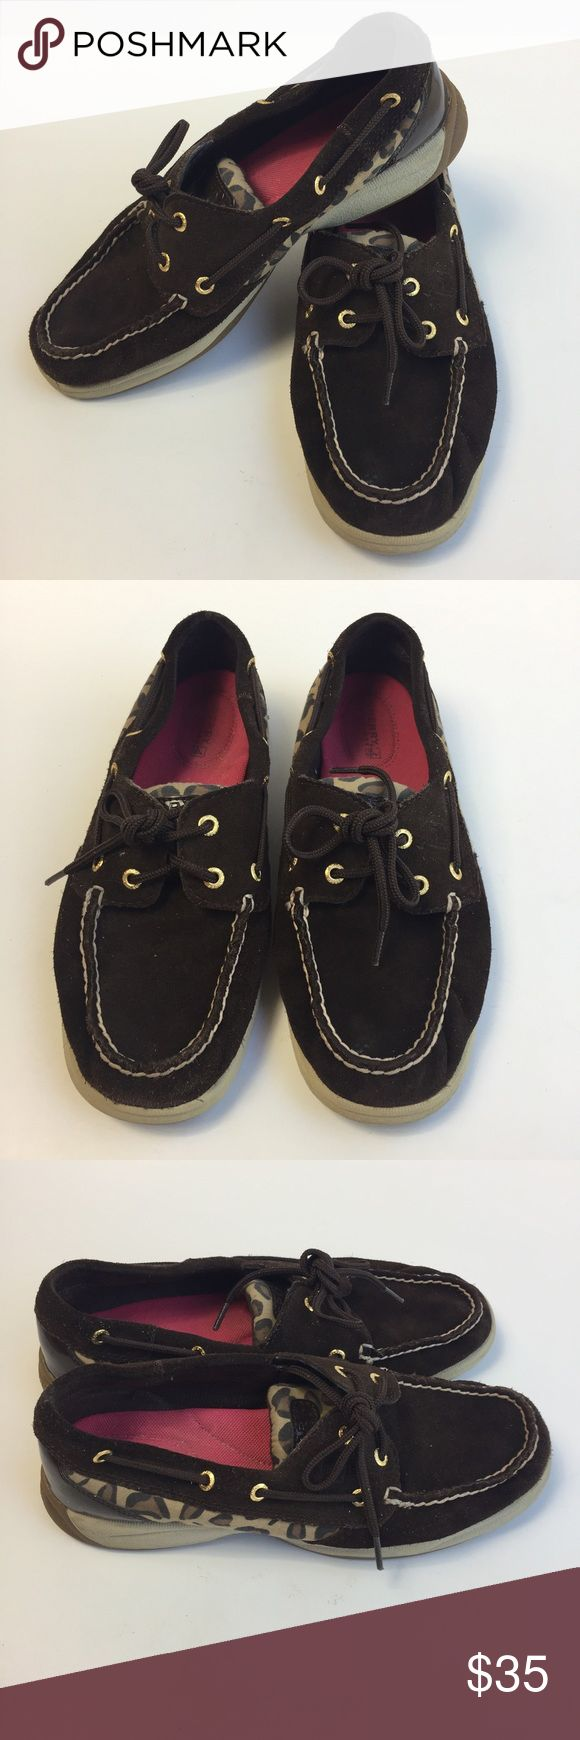 🔥 SALE 🔥 •• Sperry • KOIFISH Cheetah BOAT SHOES Women's designer boat shoes. Minor wear see pictures overall in good condition. Only have been worn a handful of times. These shoes go with EVERYTHING!  Material: Leather Color: Dark Brown Tan Cream Pink Interior (LLR5-DWN) Sperry Shoes Flats & Loafers